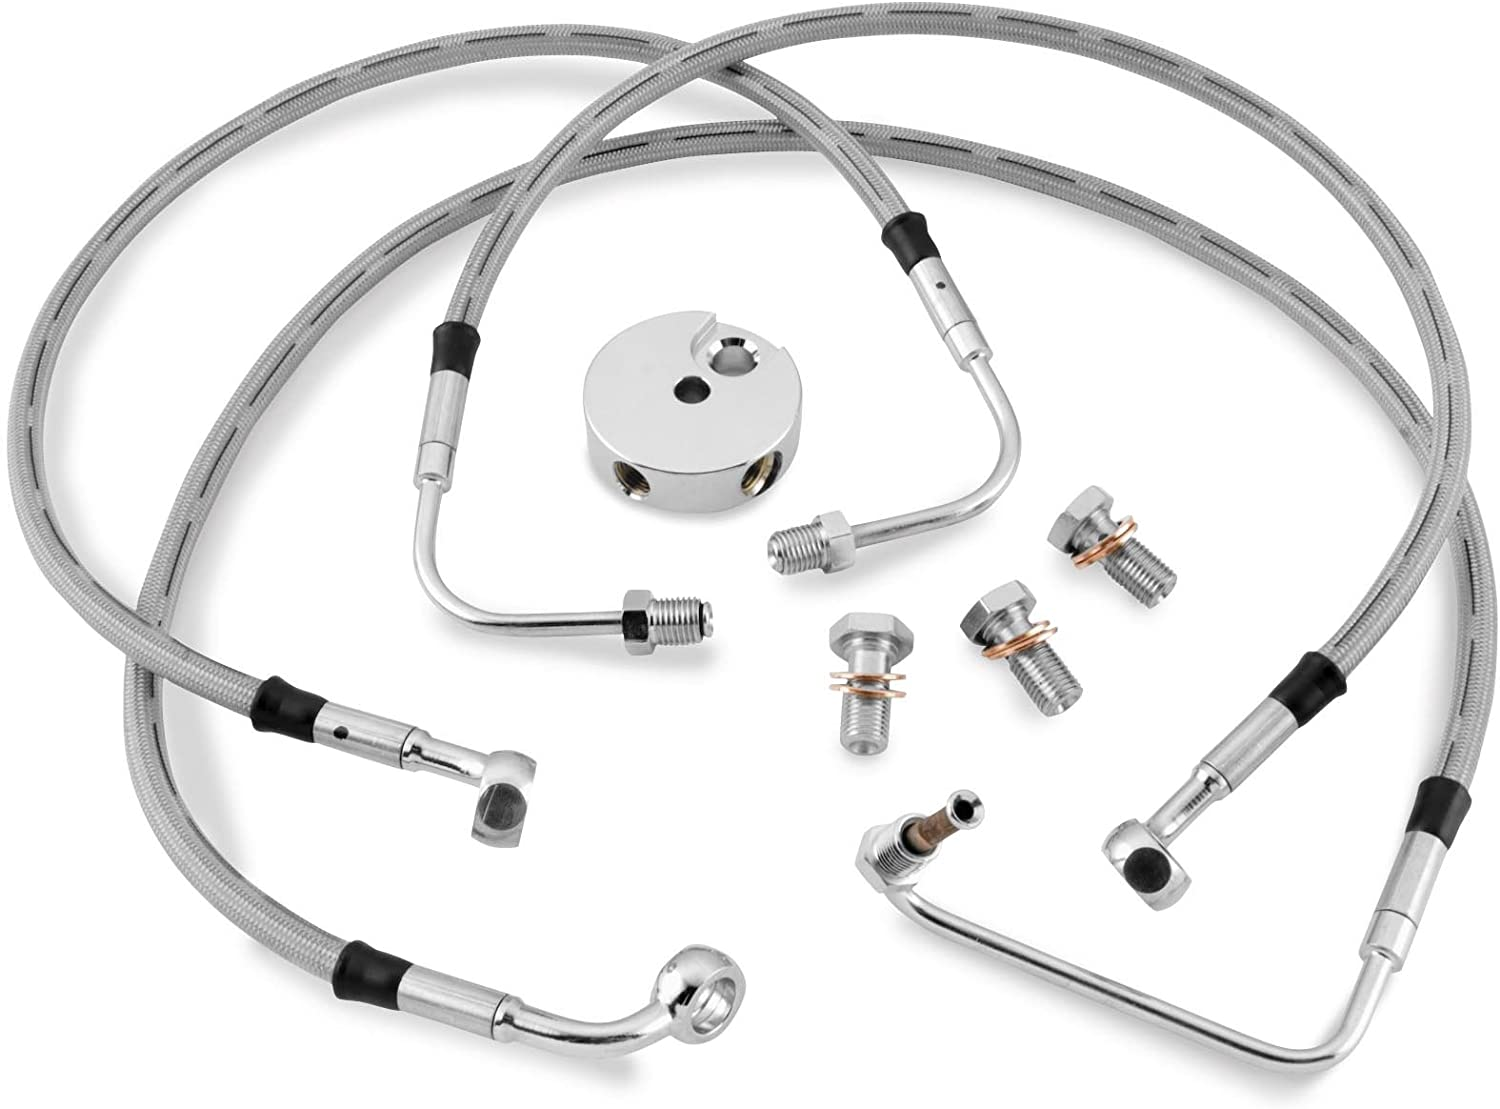 Bikers Spring new work Complete Free Shipping one after another Choice Brake Line Kit Rear Stock Stainless C HD FLST for